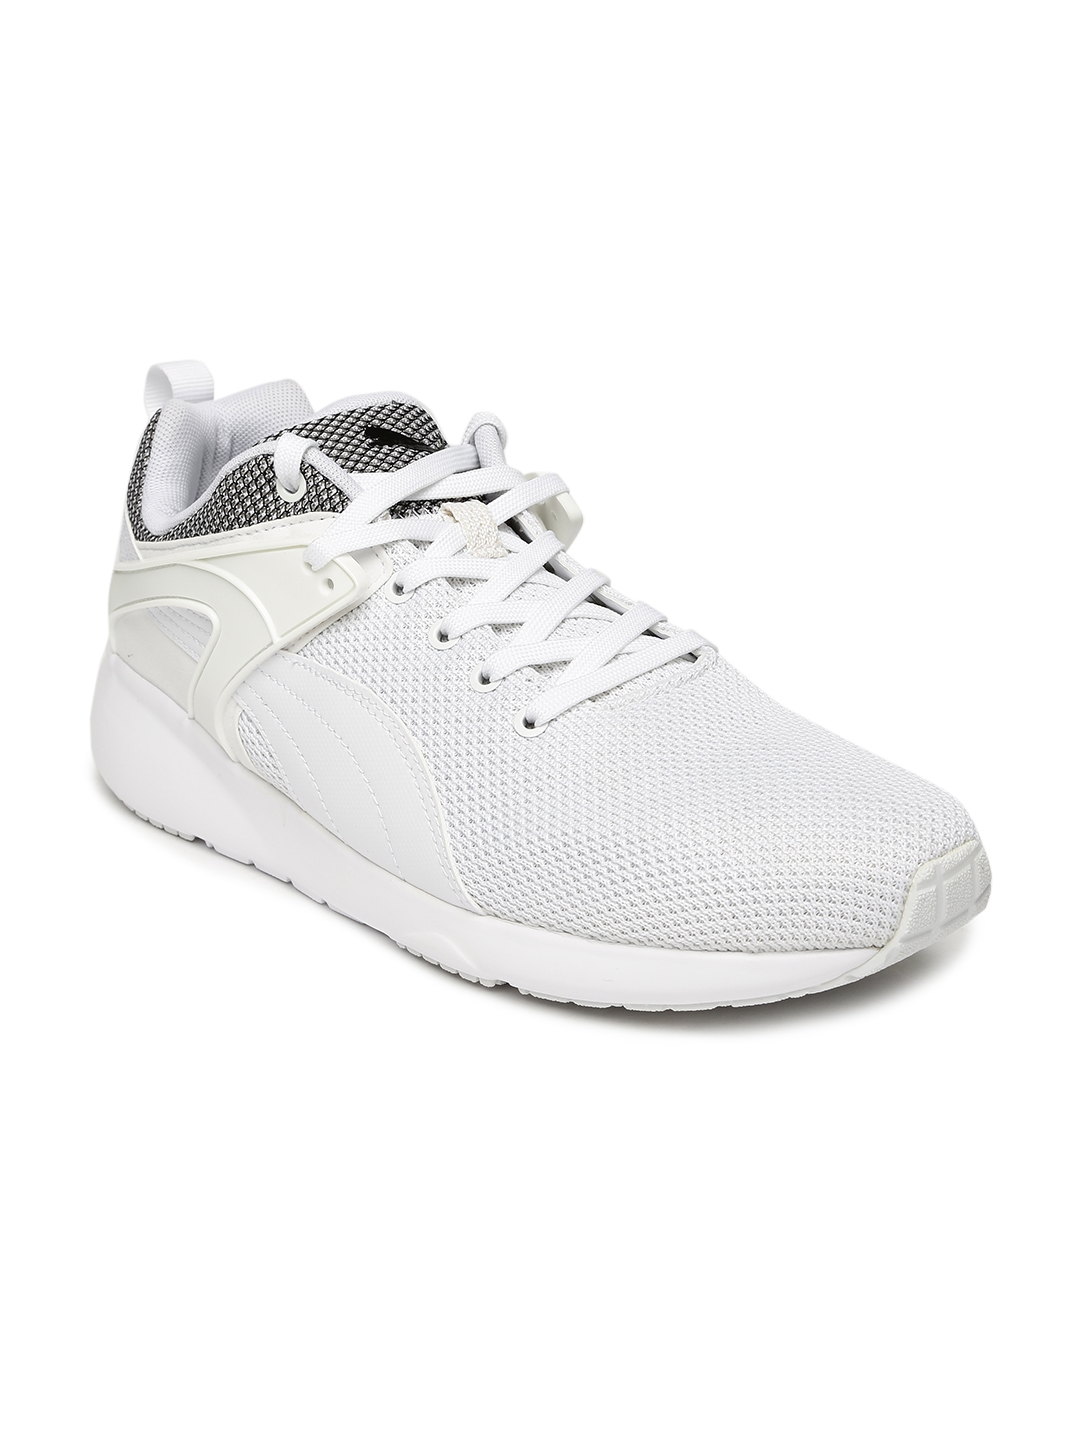 2e9391bf0502 Buy Puma Men Off White Solid Aril Blaze Sneakers - Casual Shoes for ...